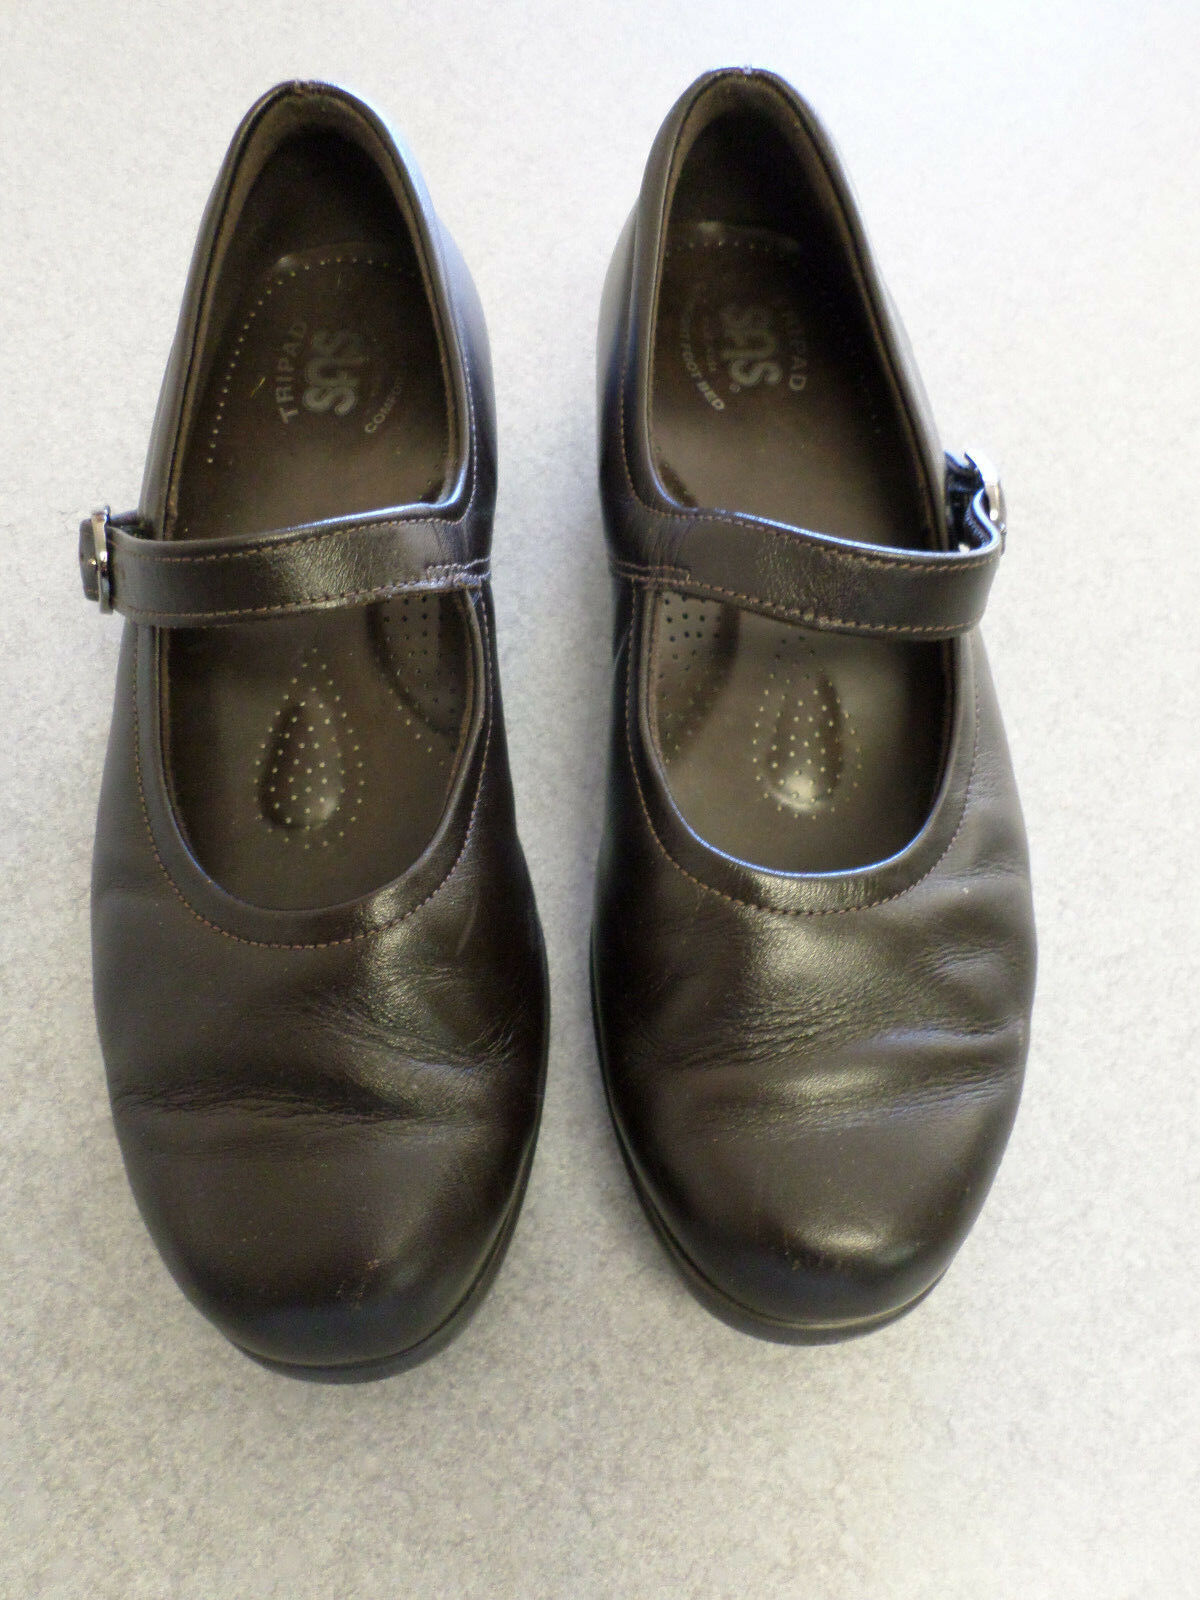 SAS dark brown leather Mary Janes. Women's 8 M made in USA